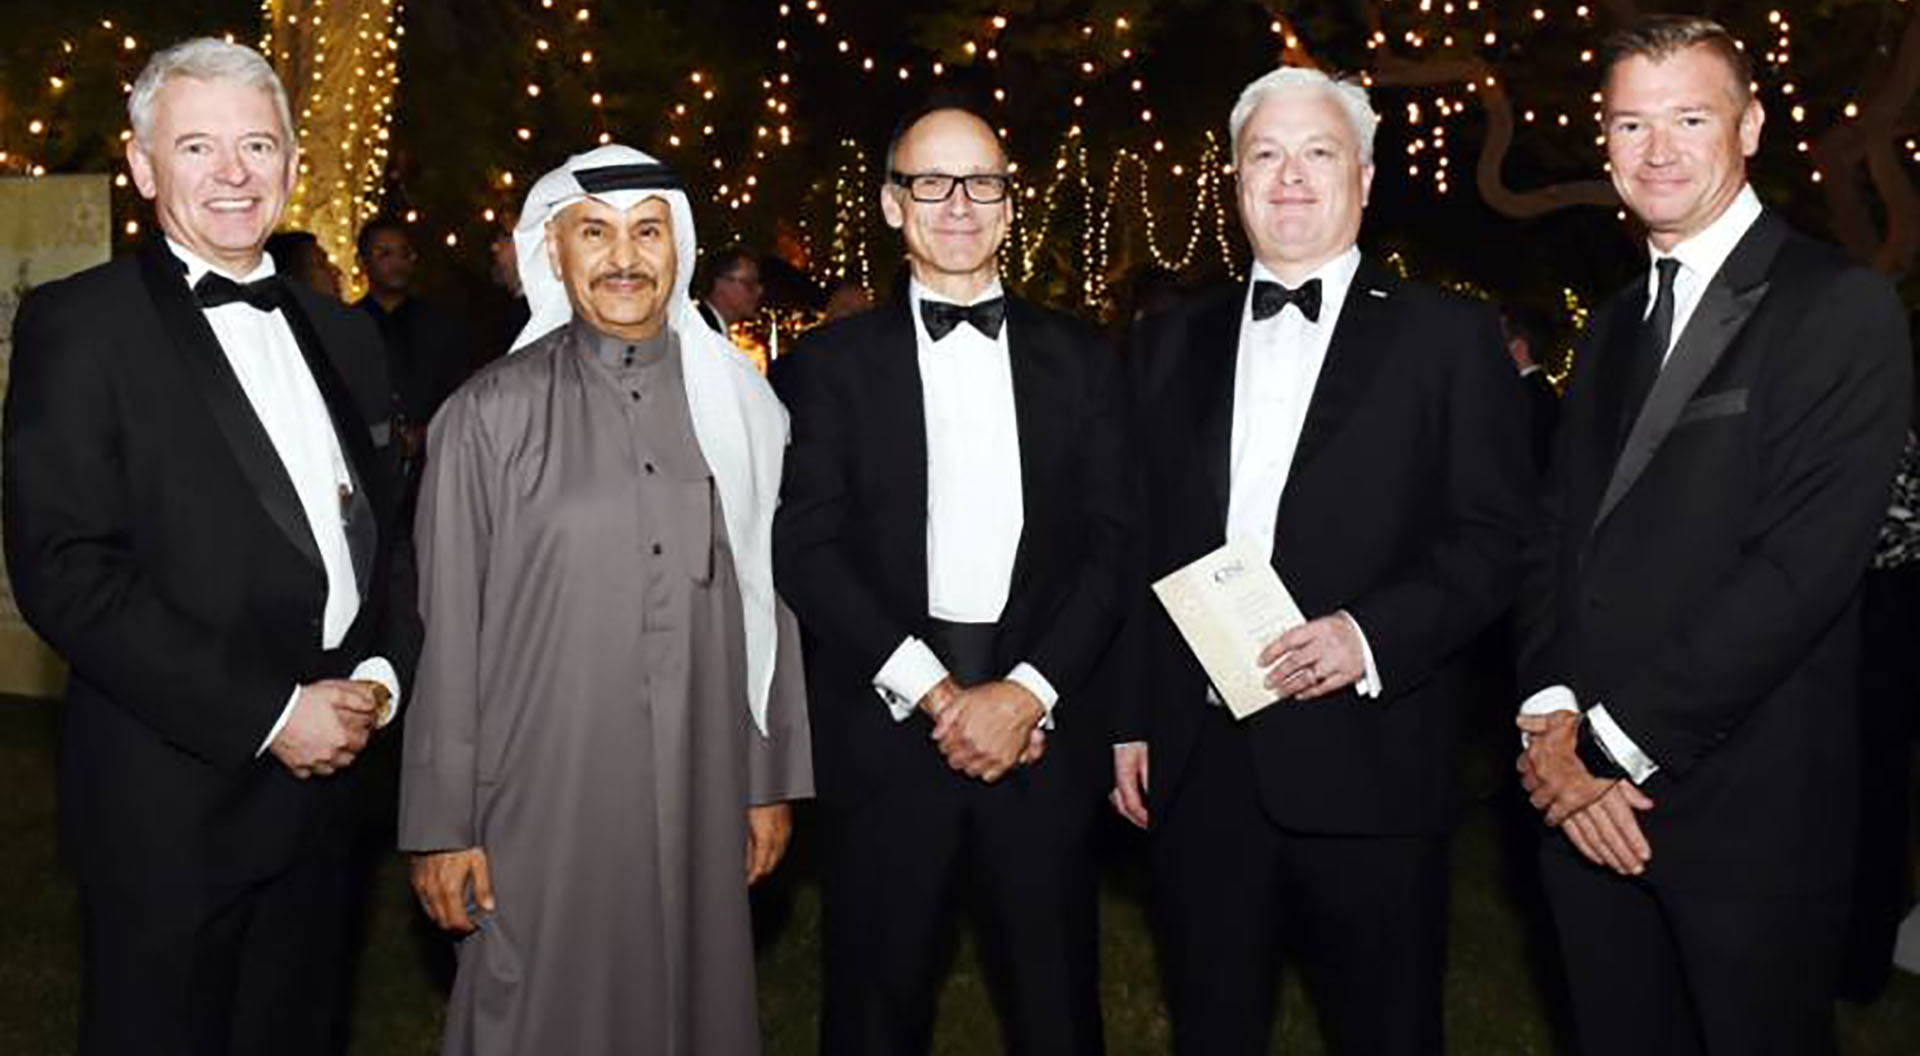 CISI celebrates ten years in the UAE with prestigious Gala Dinner and Awards Ceremony